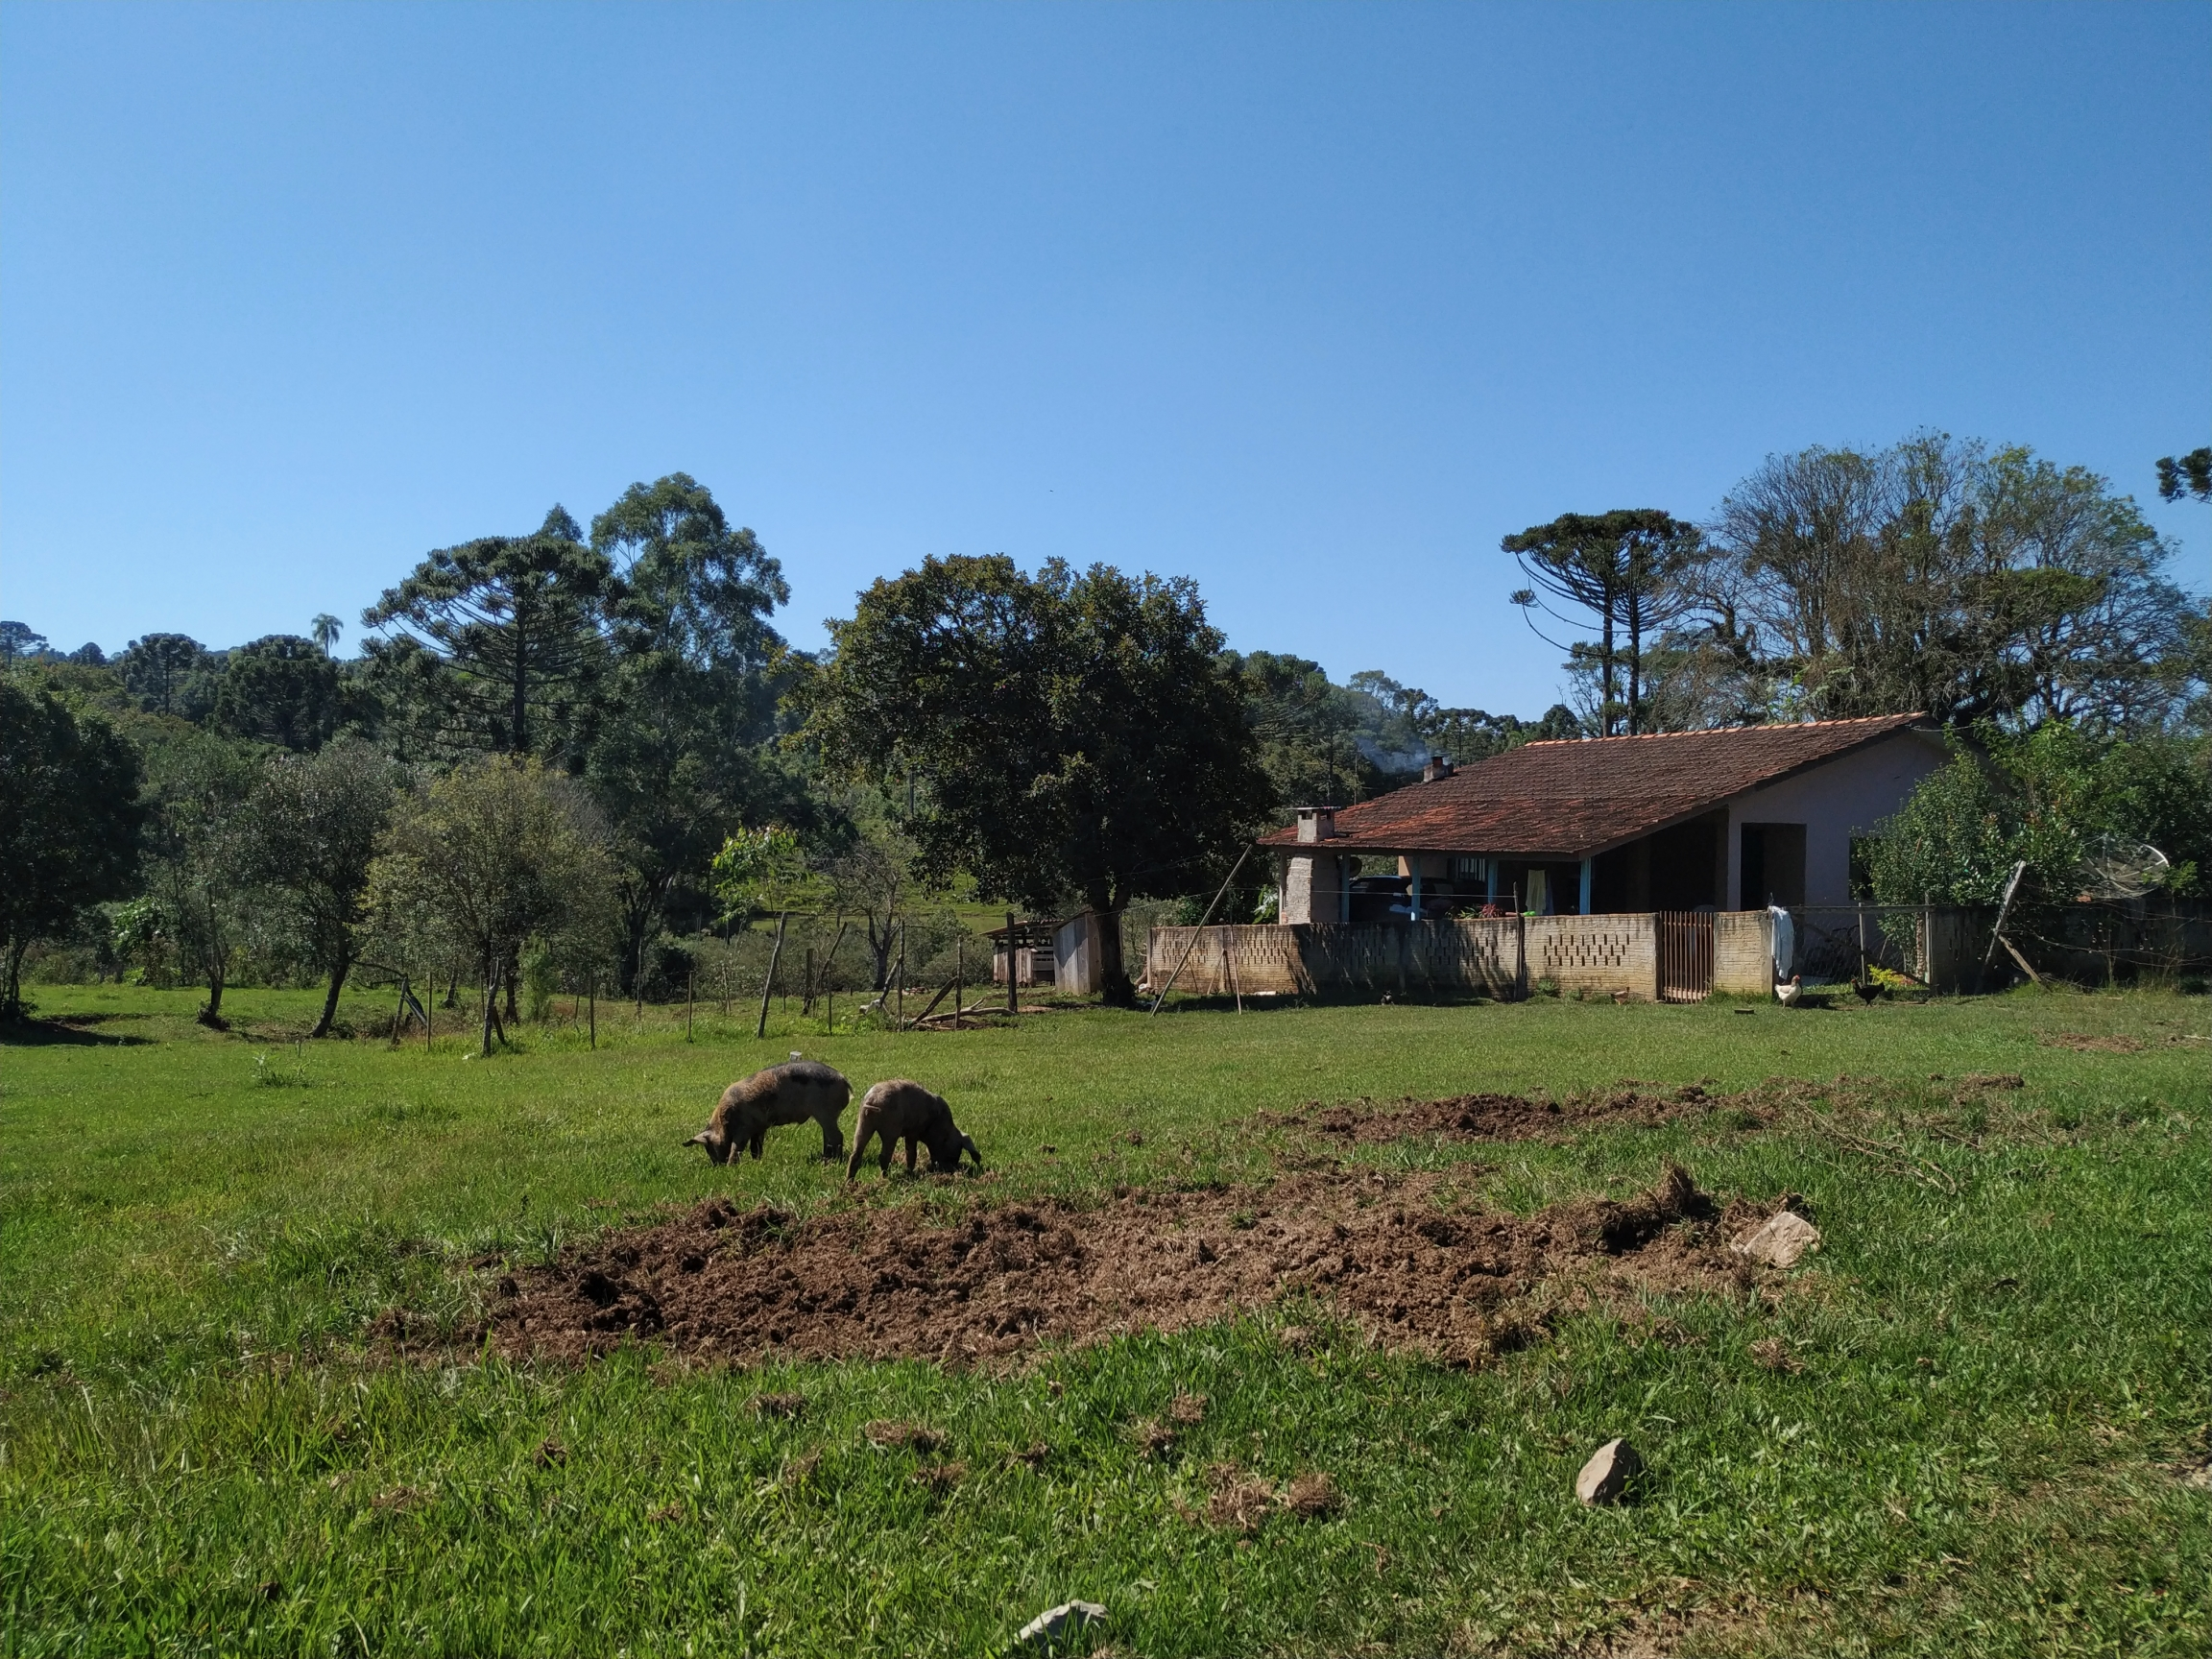 In thistraditionalfaxinal community,Marcondes, in the countryside of the Brazilian state of Paraná, residentslet their farm animals roam free on their communal lands.